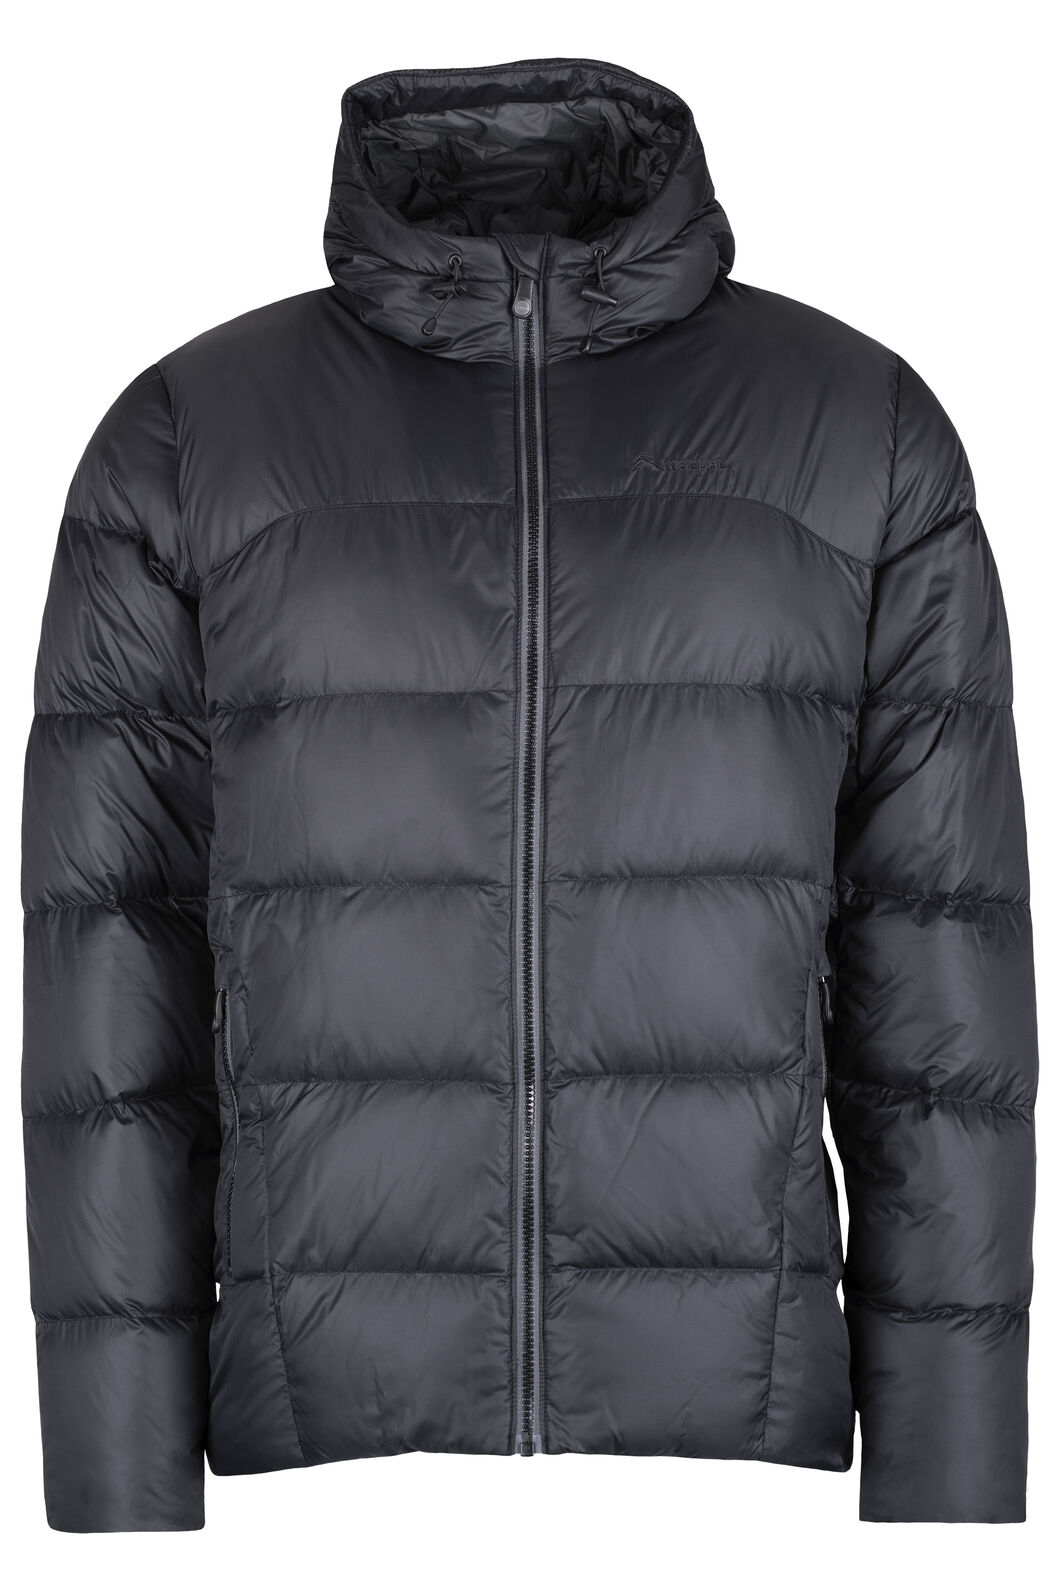 Macpac Sundowner Hooded HyperDRY™ Down Jacket - Men's, Black, hi-res